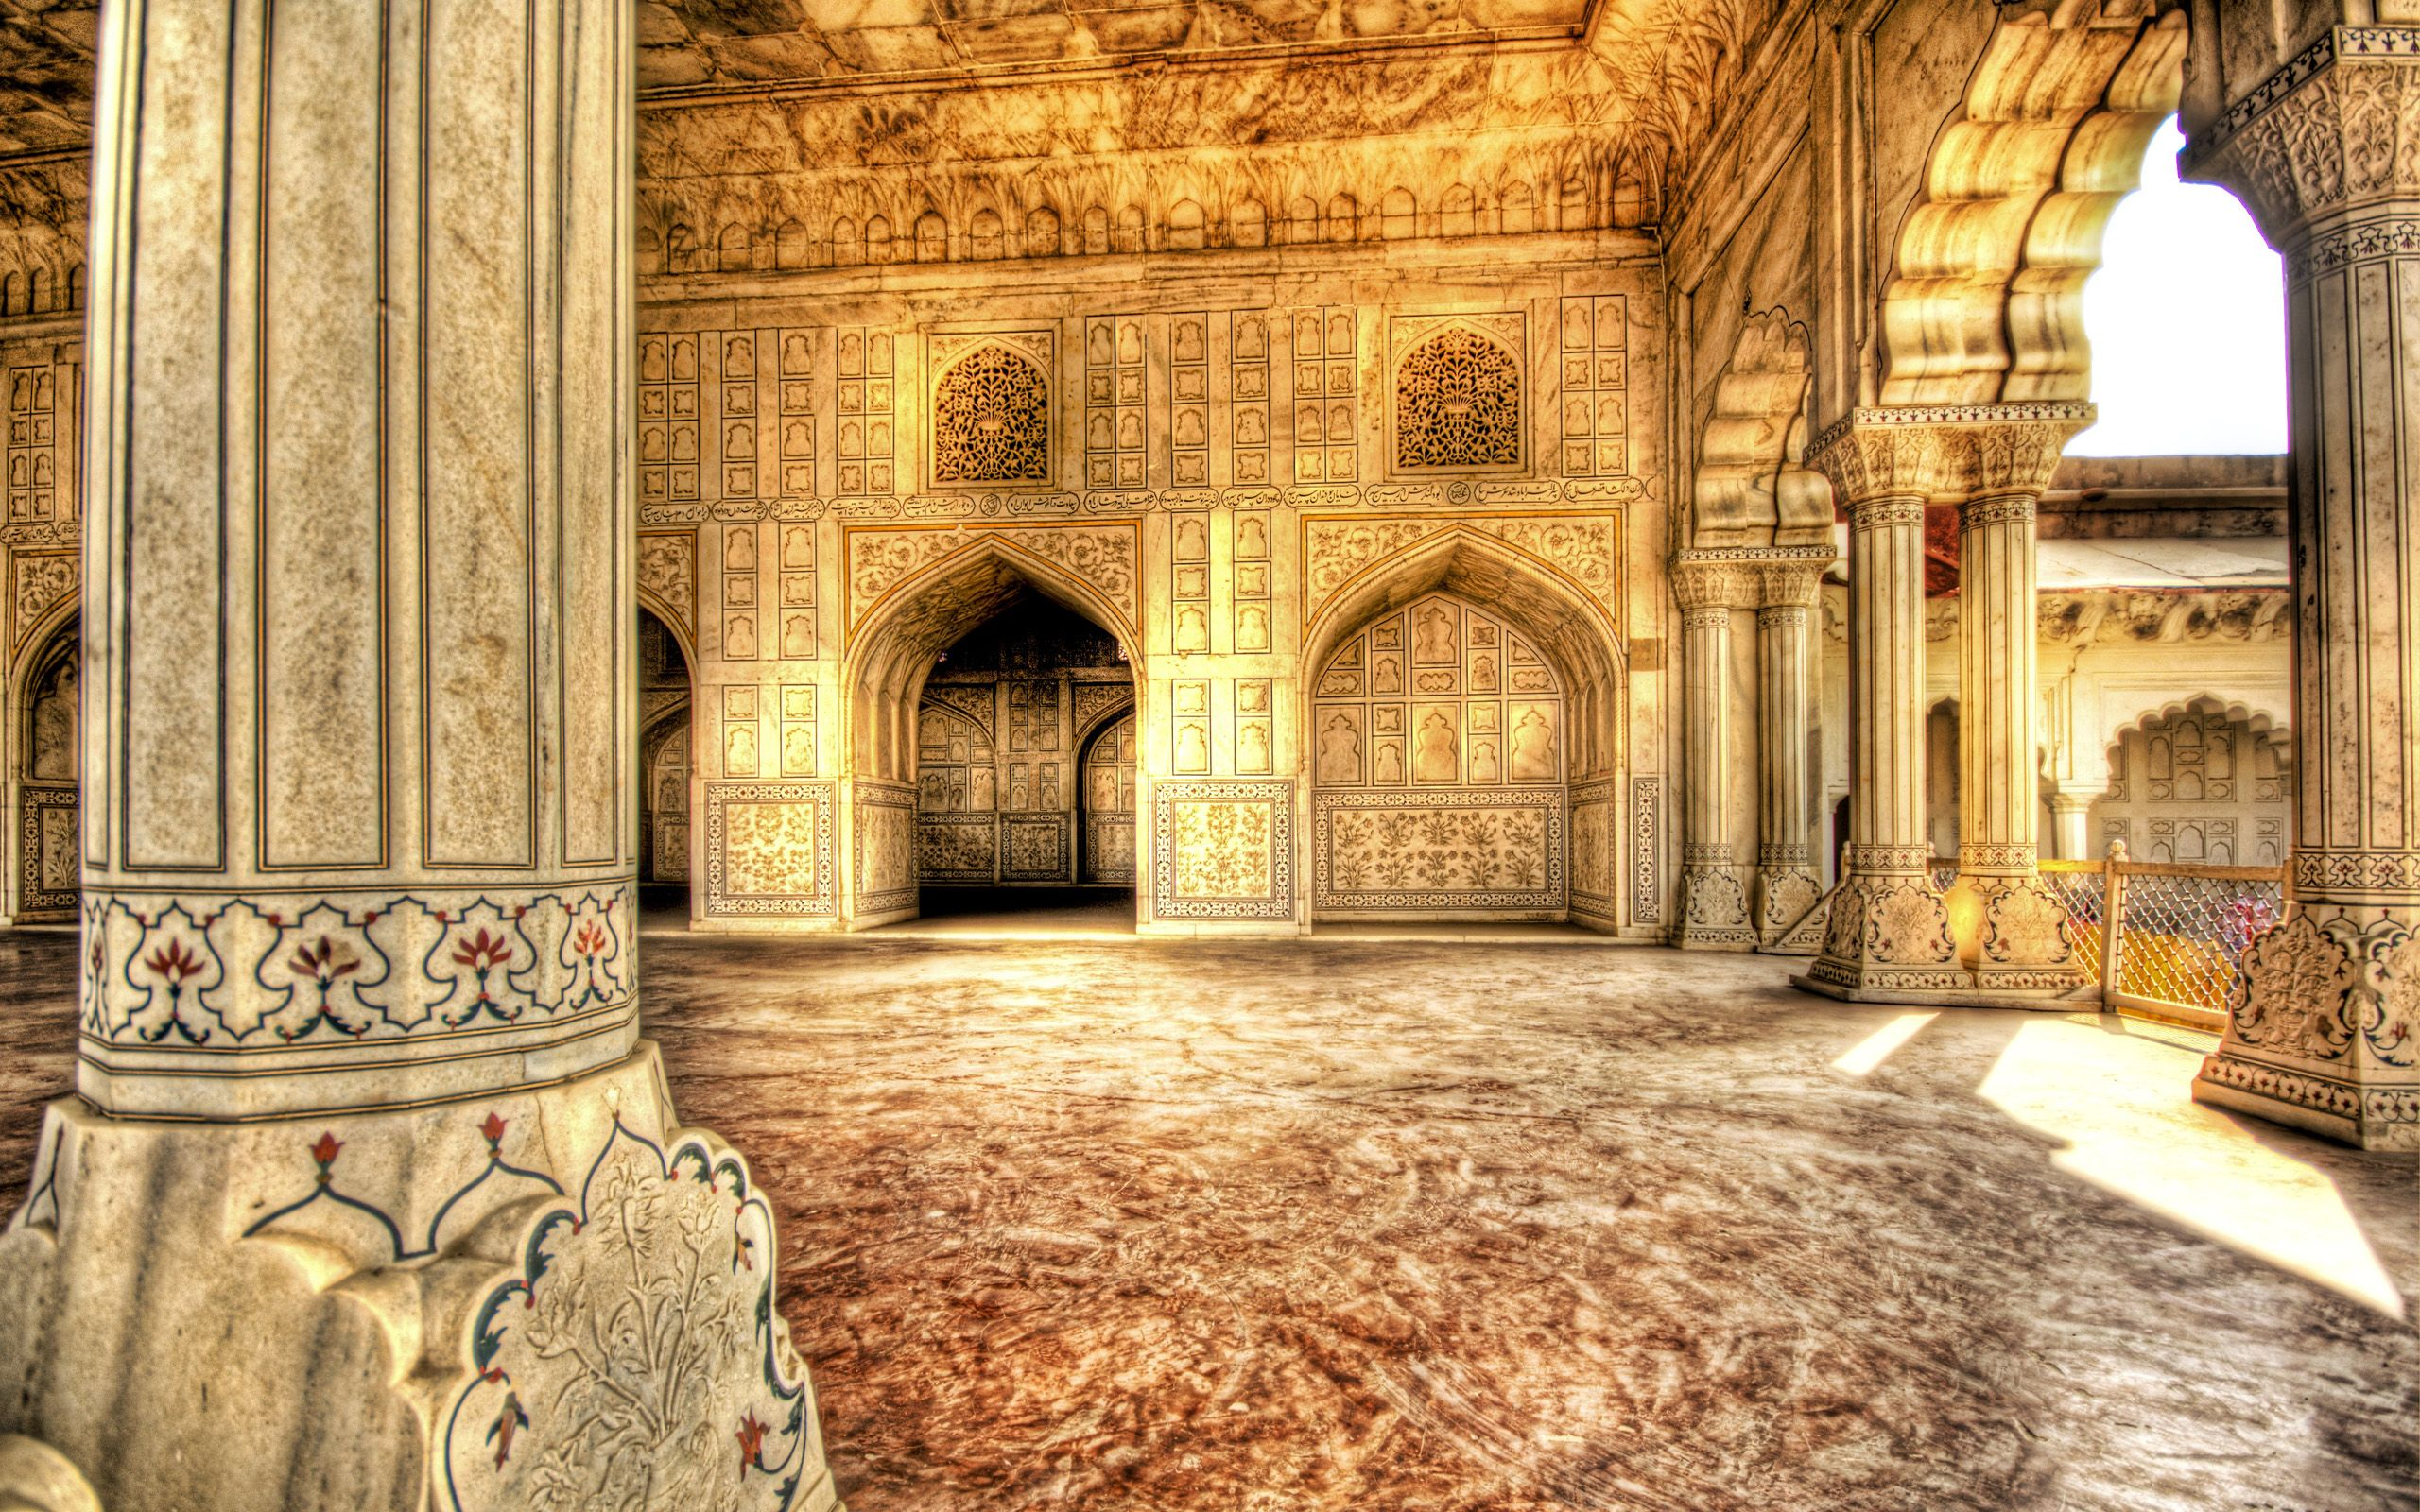 Pin By Fatima Termos On Tourism With Images Taj Mahal Interior